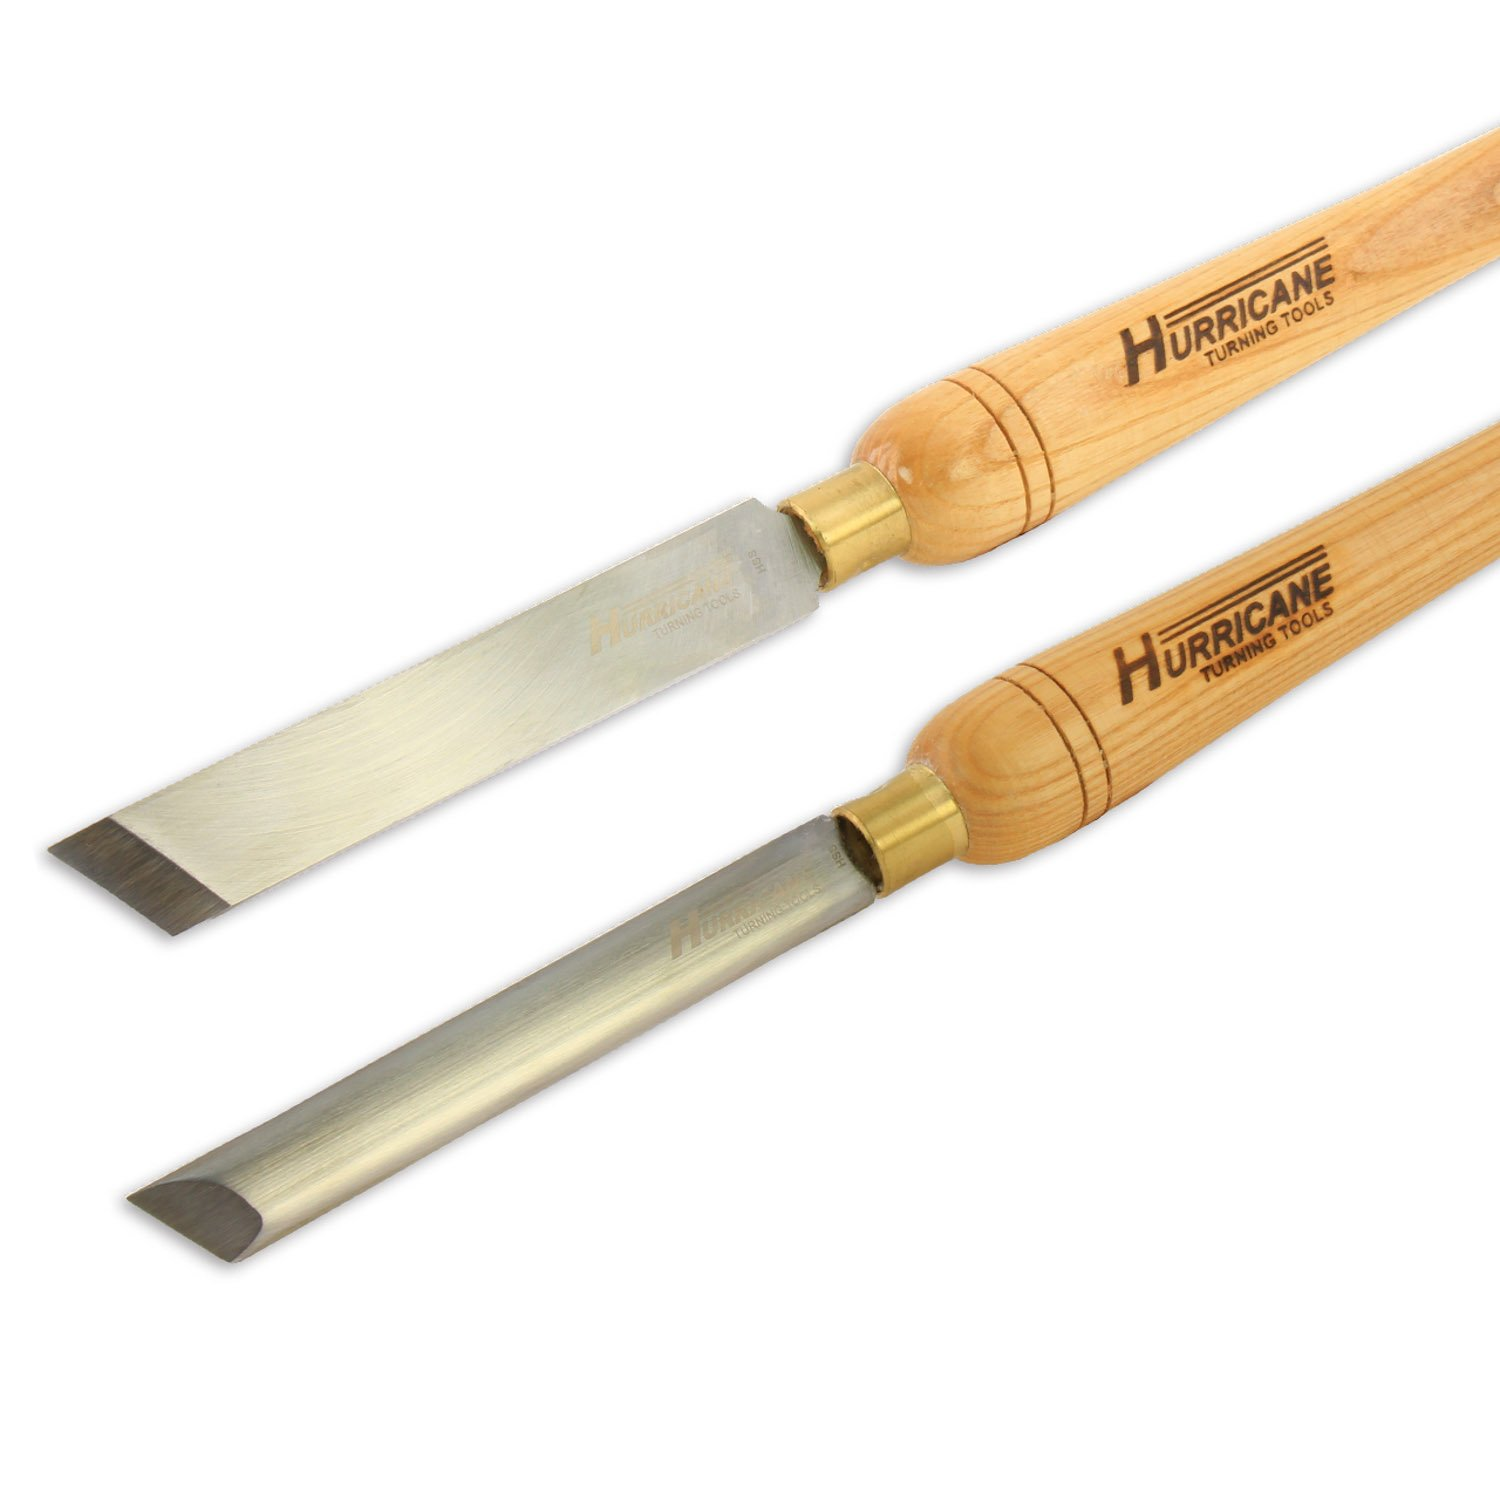 Hurricane Turning Tools, Woodturning Two Piece Skew Chisel Set, 1 Inches Standard Skew Chisel and 3/4 Inches Oval Skew Chisel, High Speed Steel